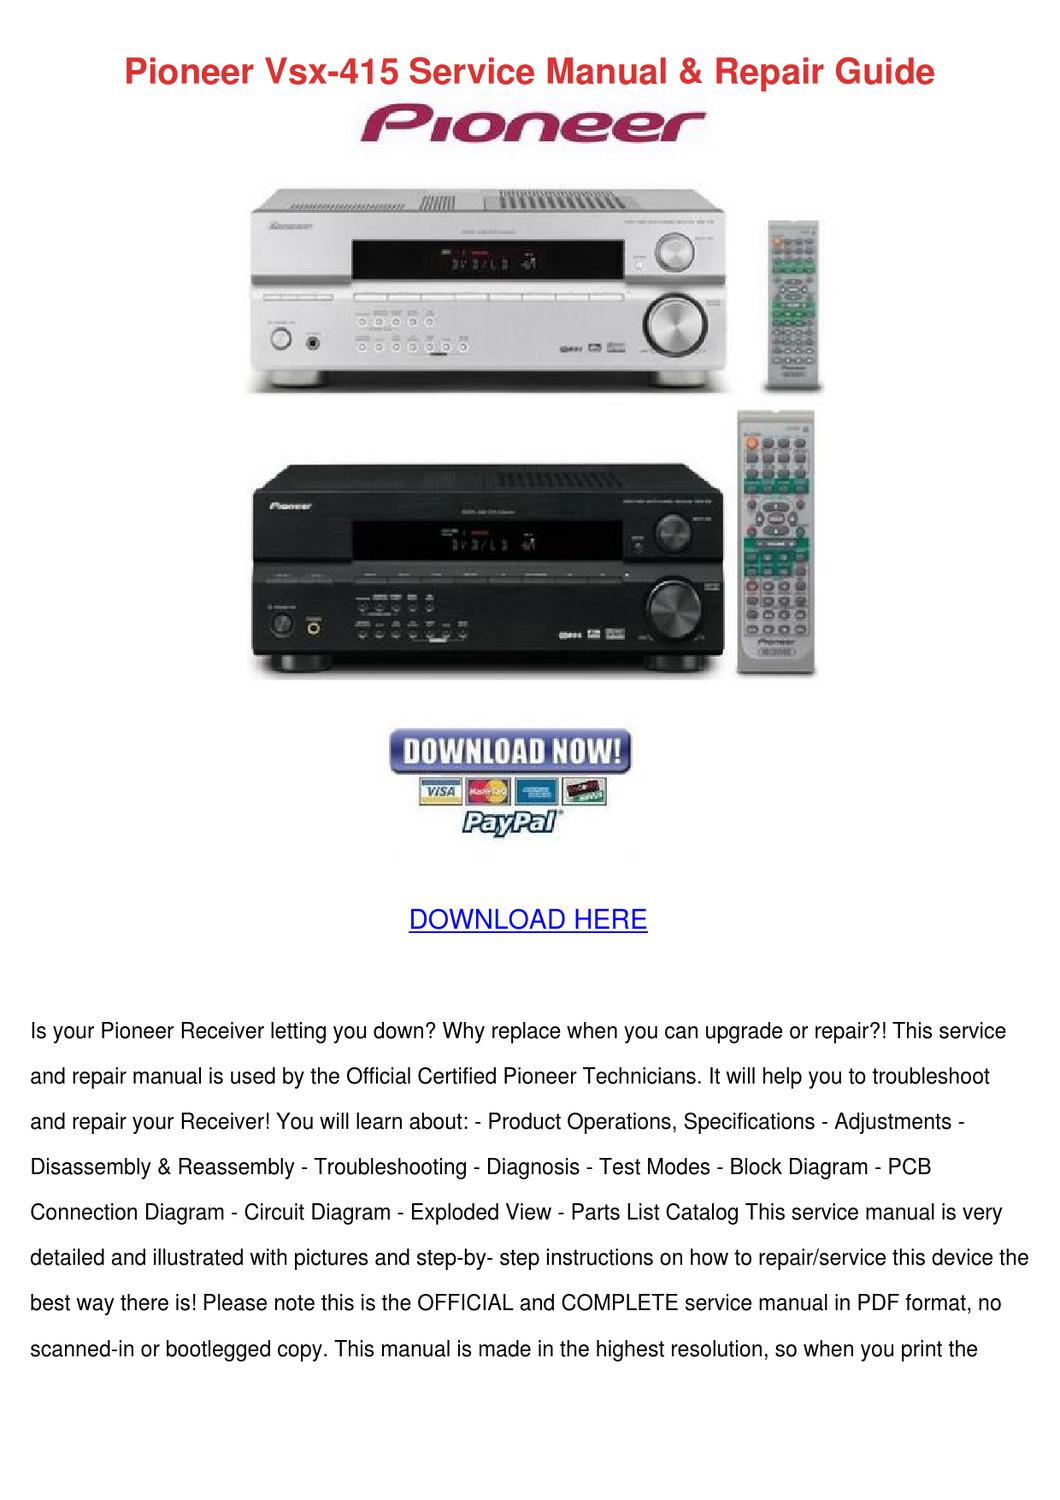 Vsx 920 Manual And Protection Circuit Design Of 200 300a Igbt Dave Ross Blog 42 Owners Array Pioneer 415 Service Repair Guide By Lashawnjorgenson Issuu Rh